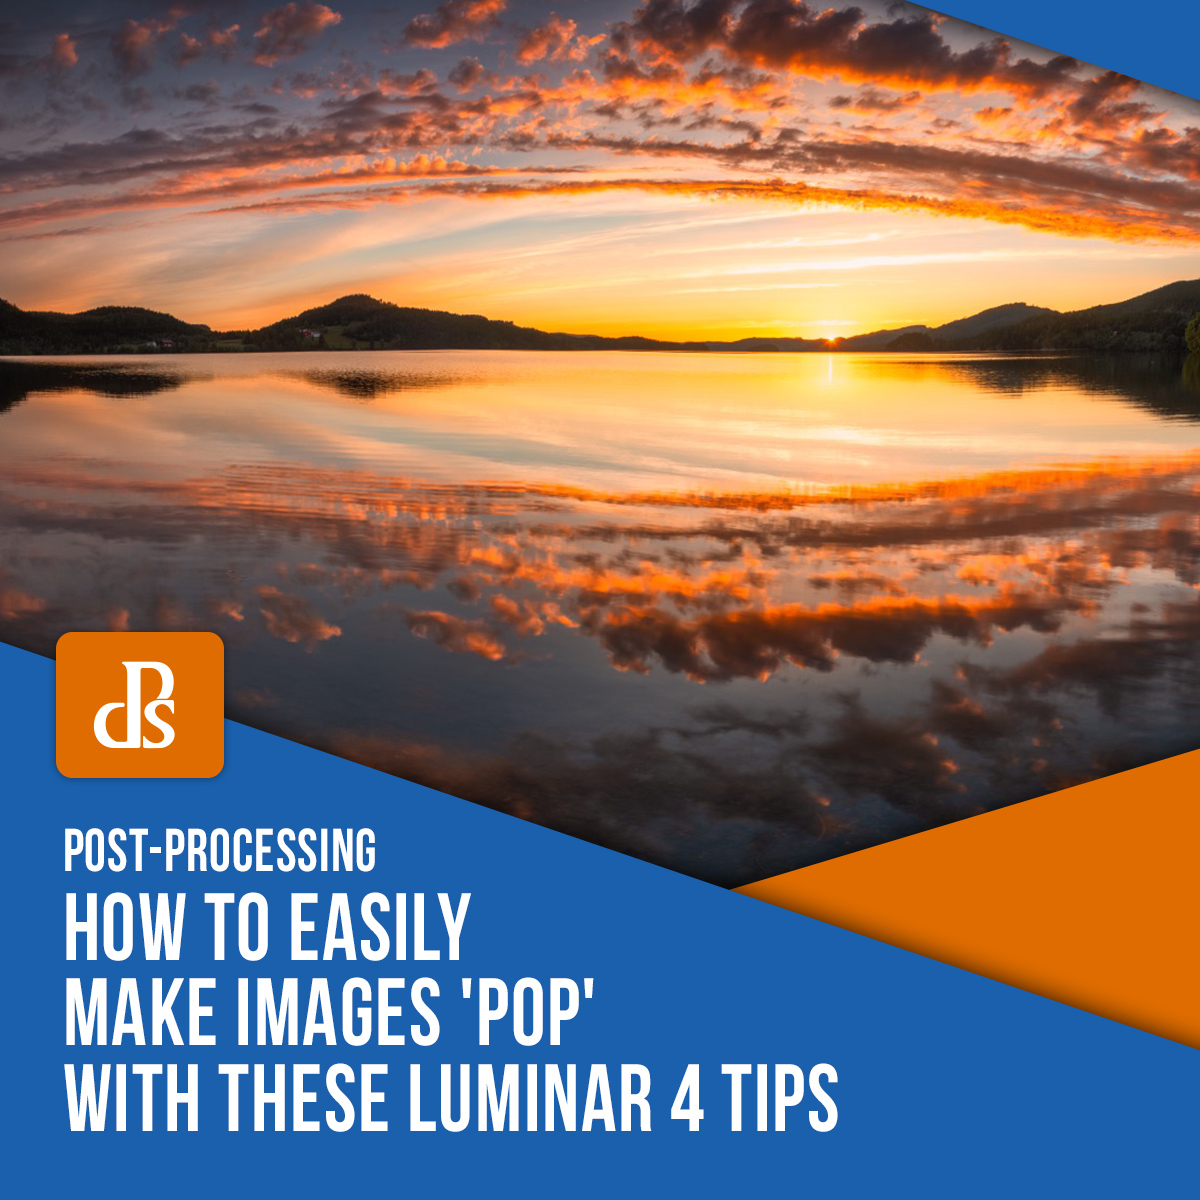 Luminar 4 tips. Sunset behind muntains with cloud reflection on water.